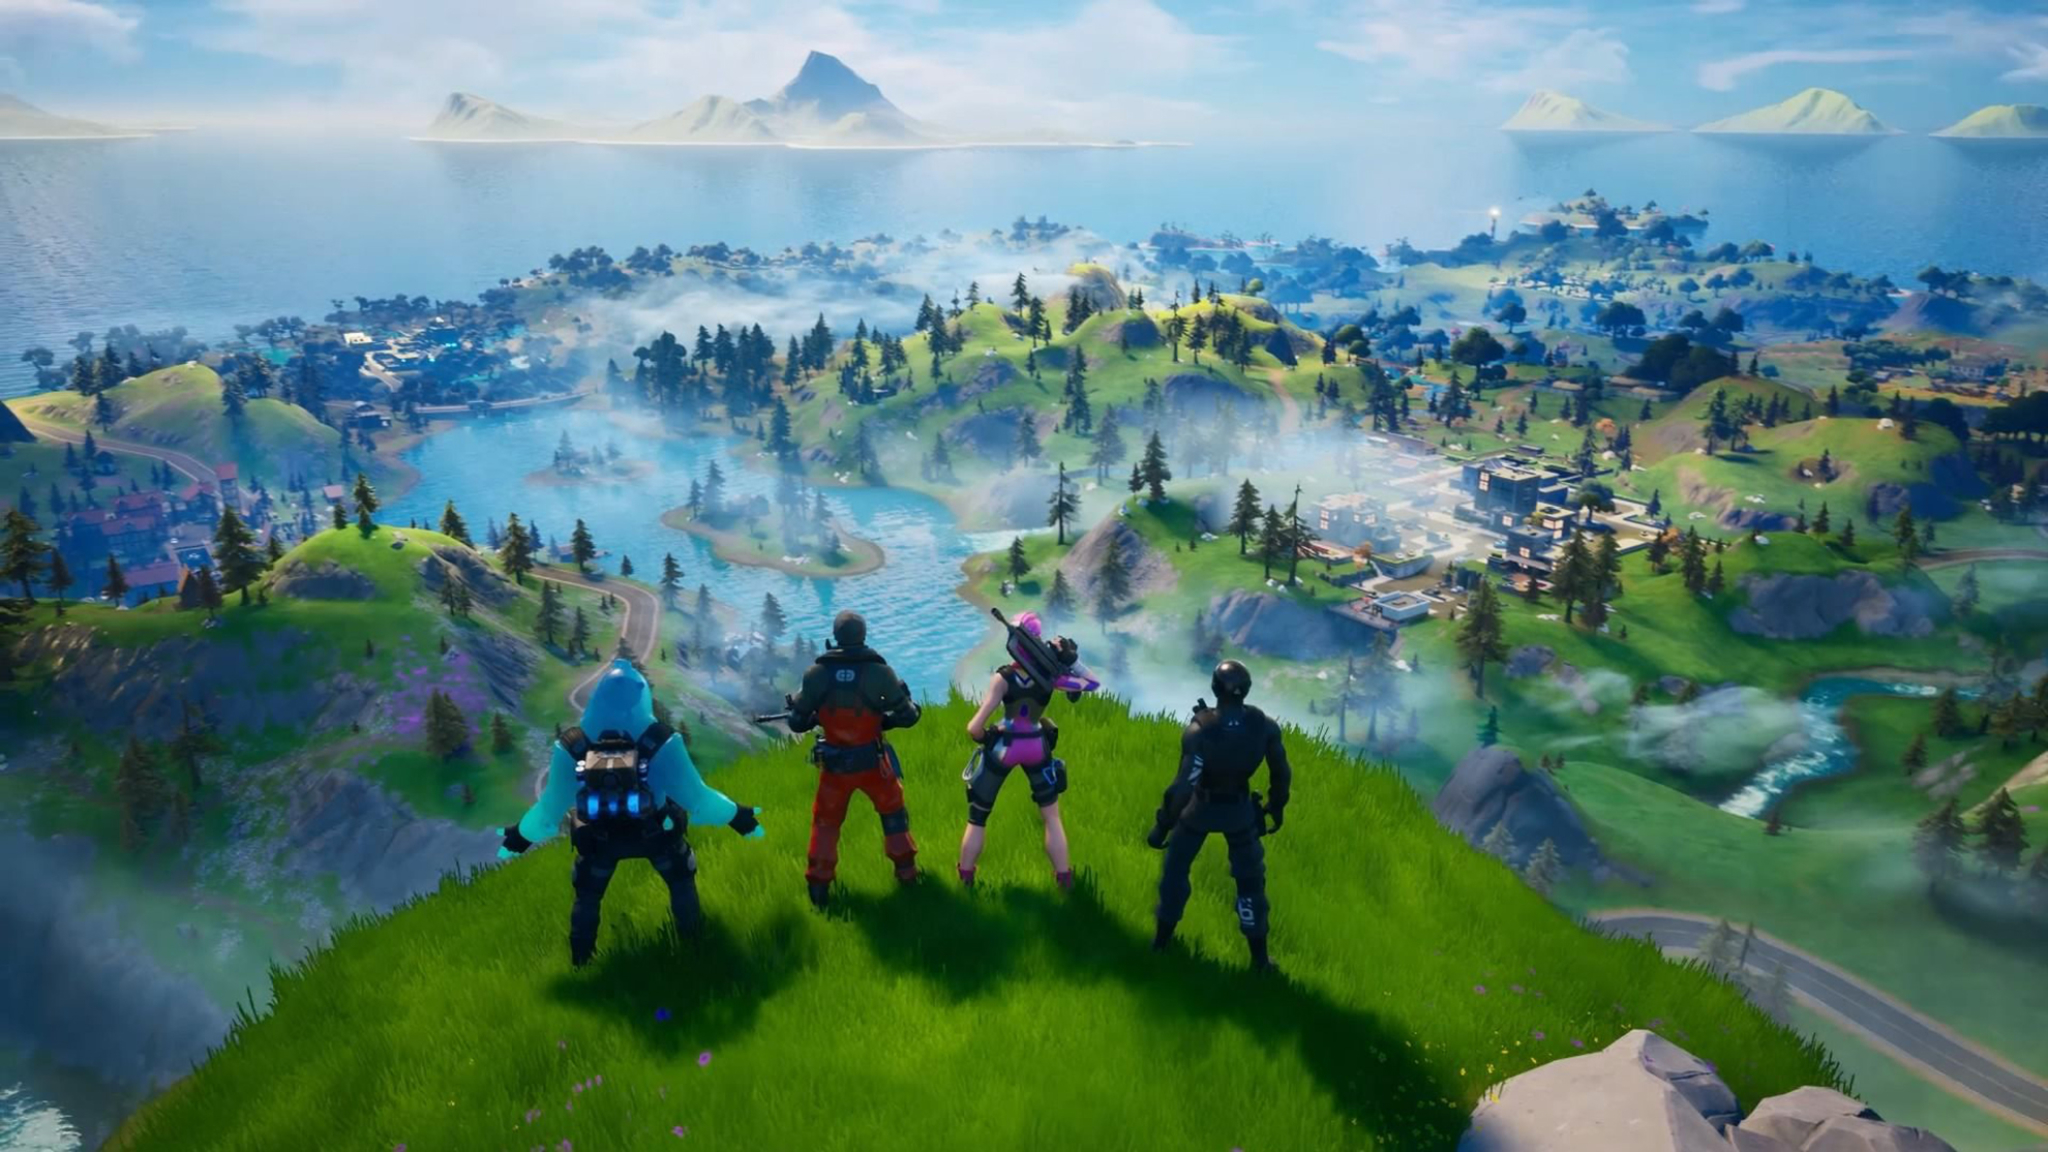 2048x1152 Fortnite Chapter 2 Game 2048x1152 Resolution